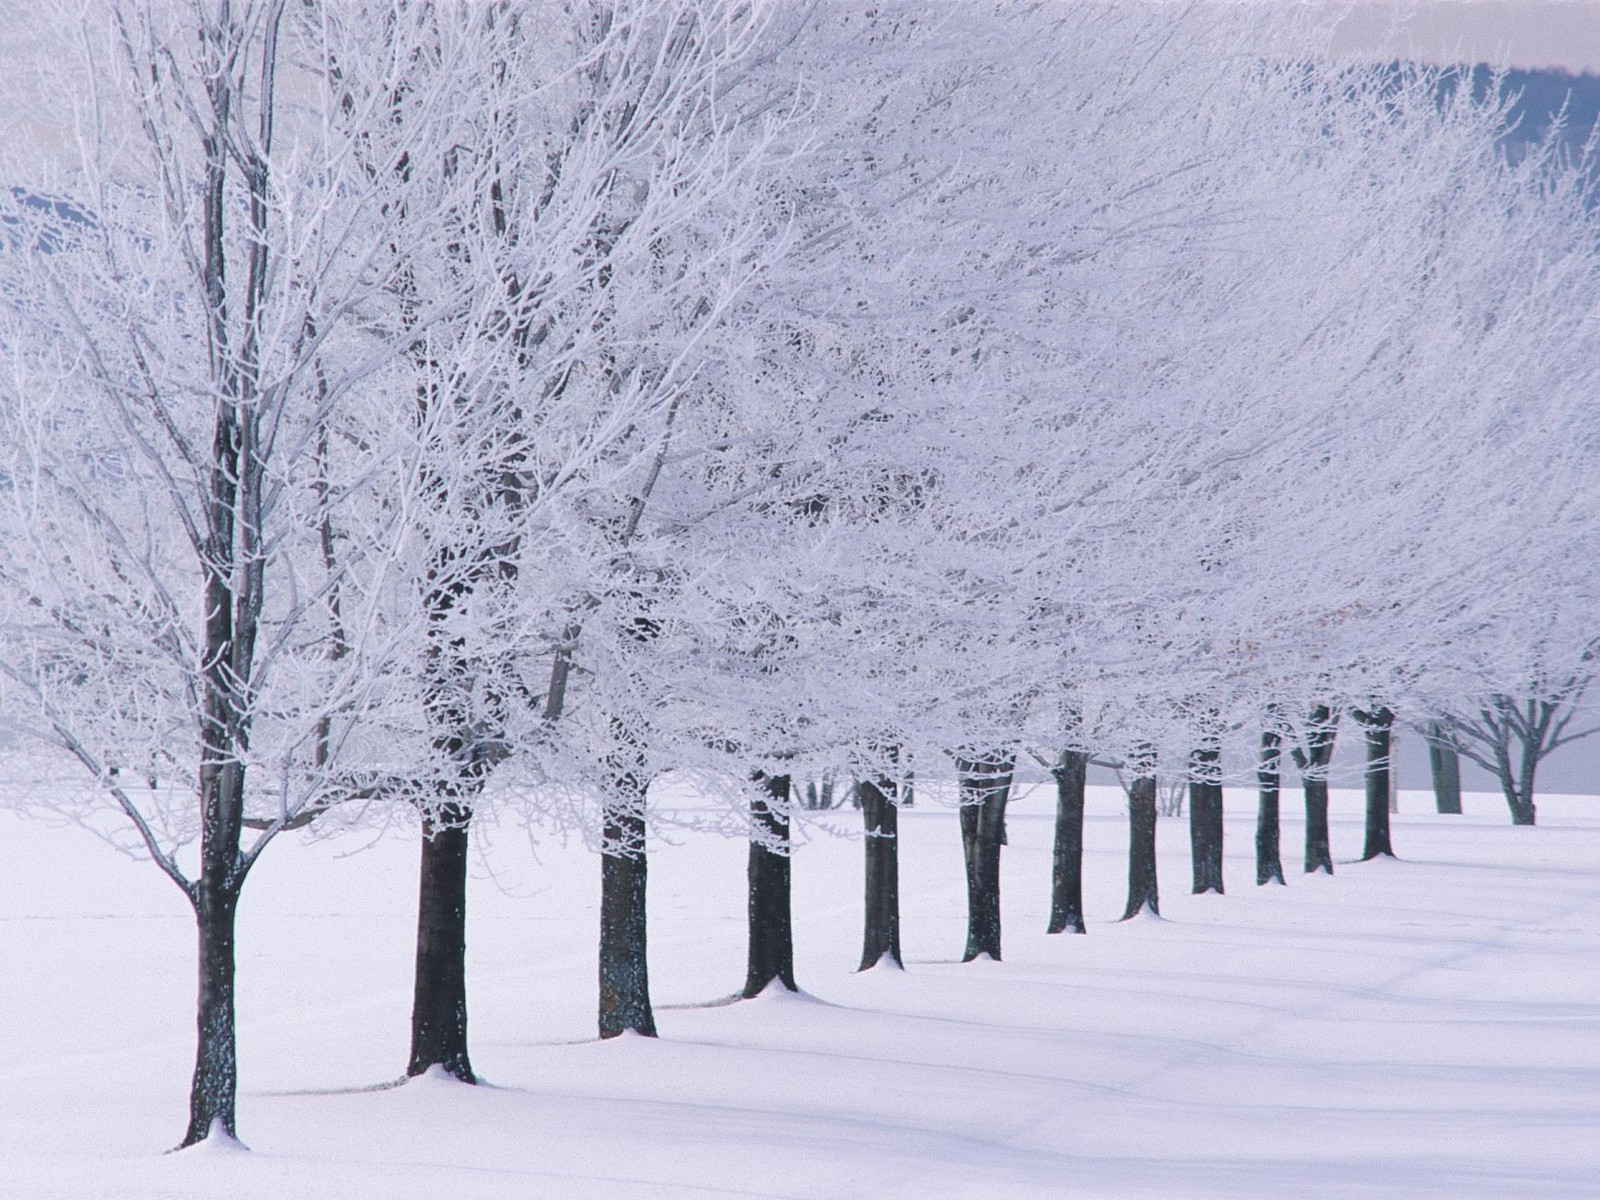 cold winter cute and attractive place hd wallpaper for download